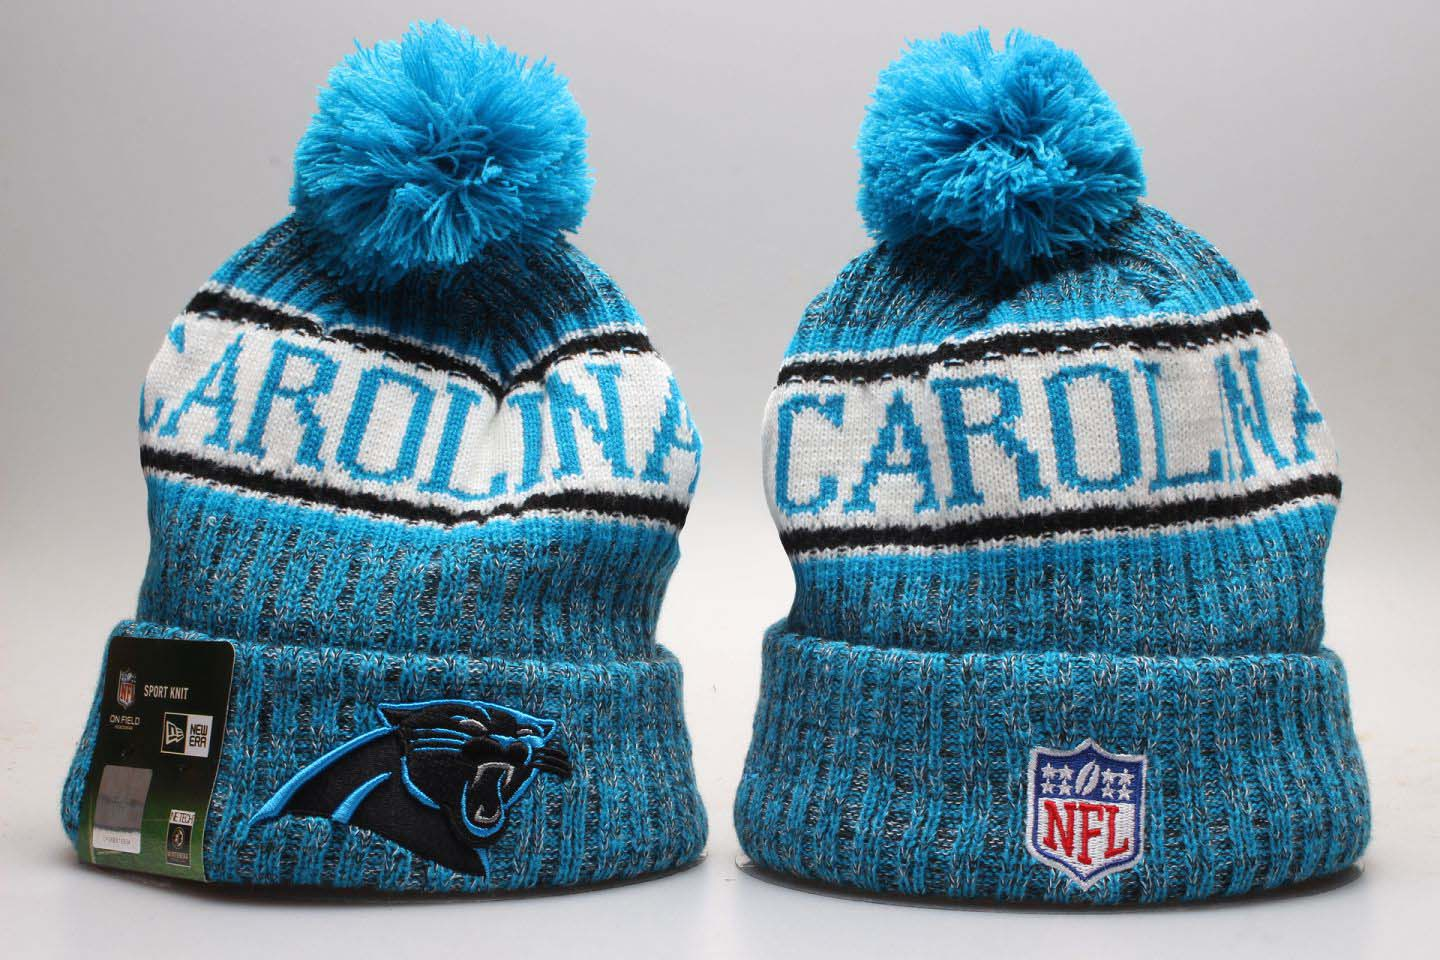 d49c0c5fc7b Panthers Blue Wordmark Cuffed Pom Knit Hat YP